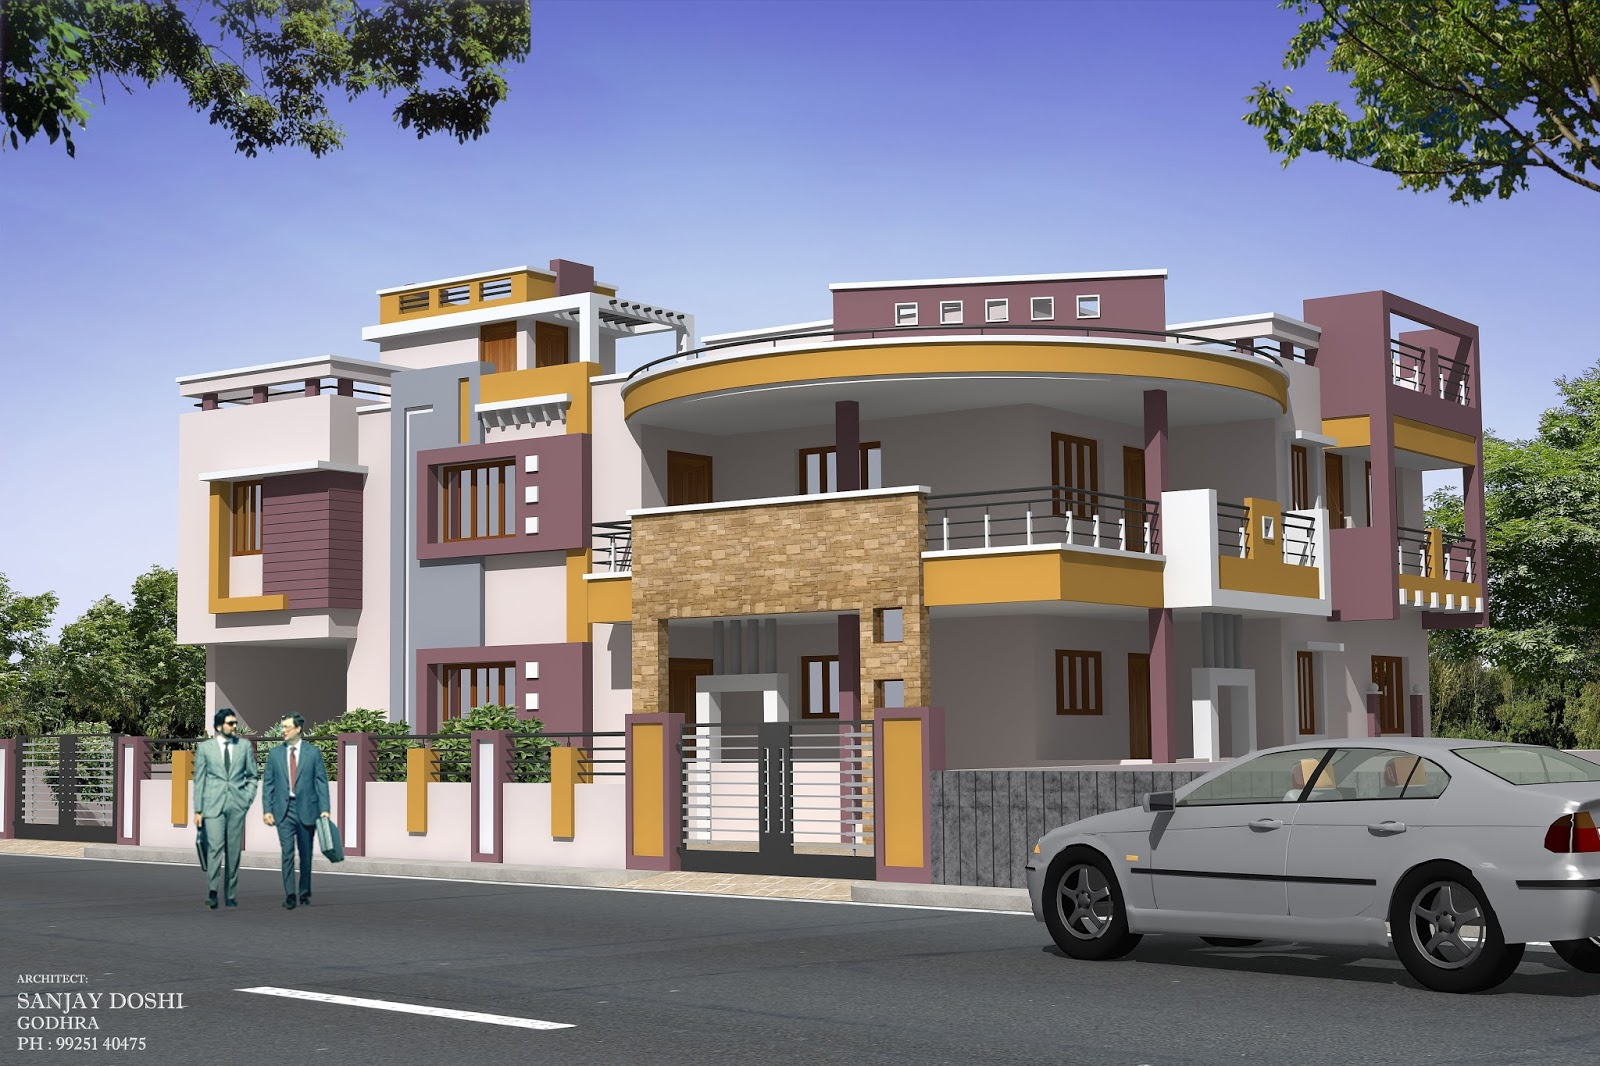 Aesthetic elevation and modern elevation rachana architect for Architecture design for home in vadodara